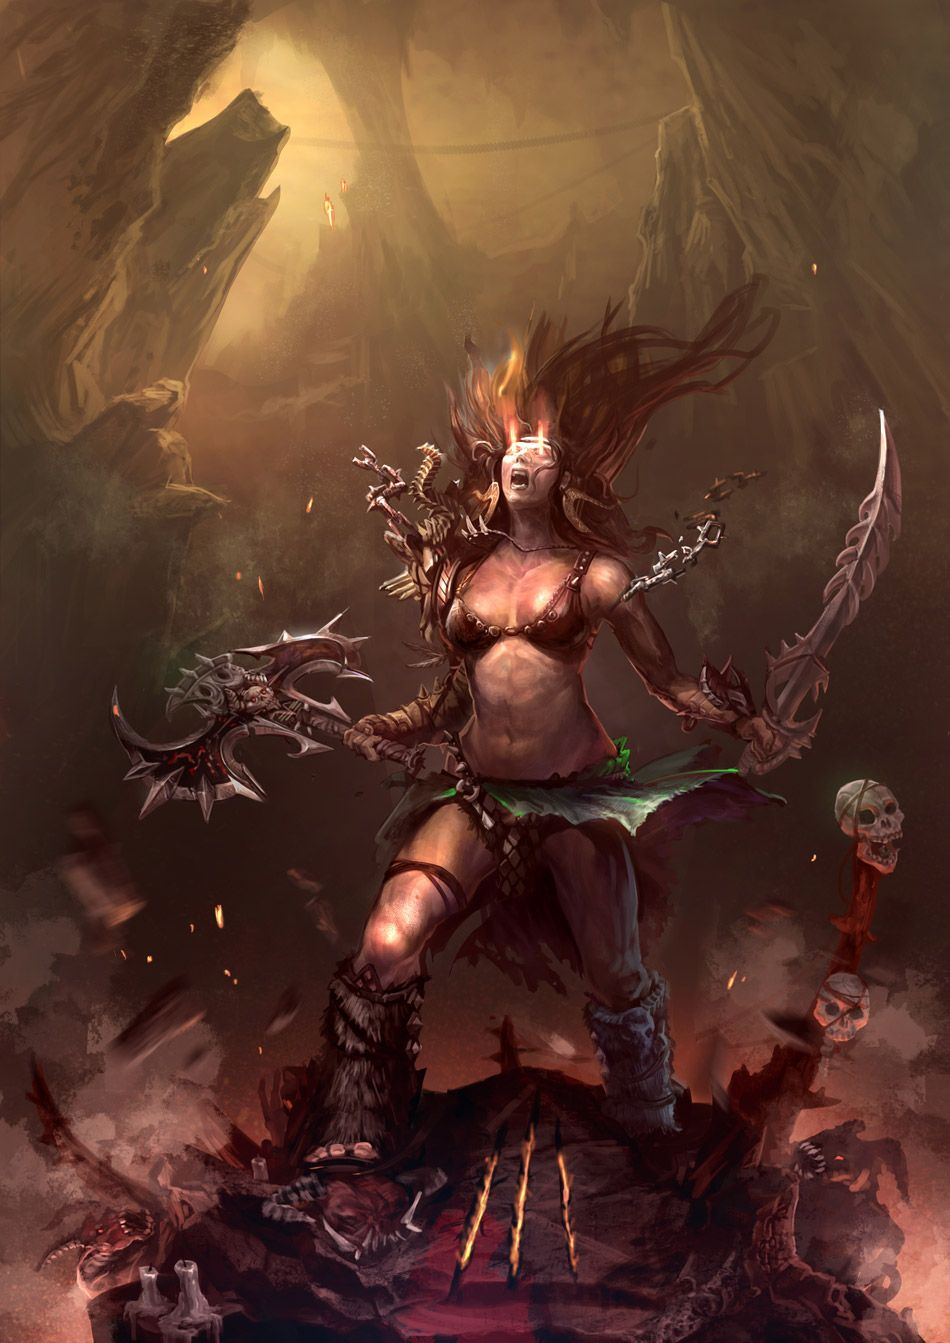 Pin by Алис Яйолу on Diablo III Fantasy female warrior